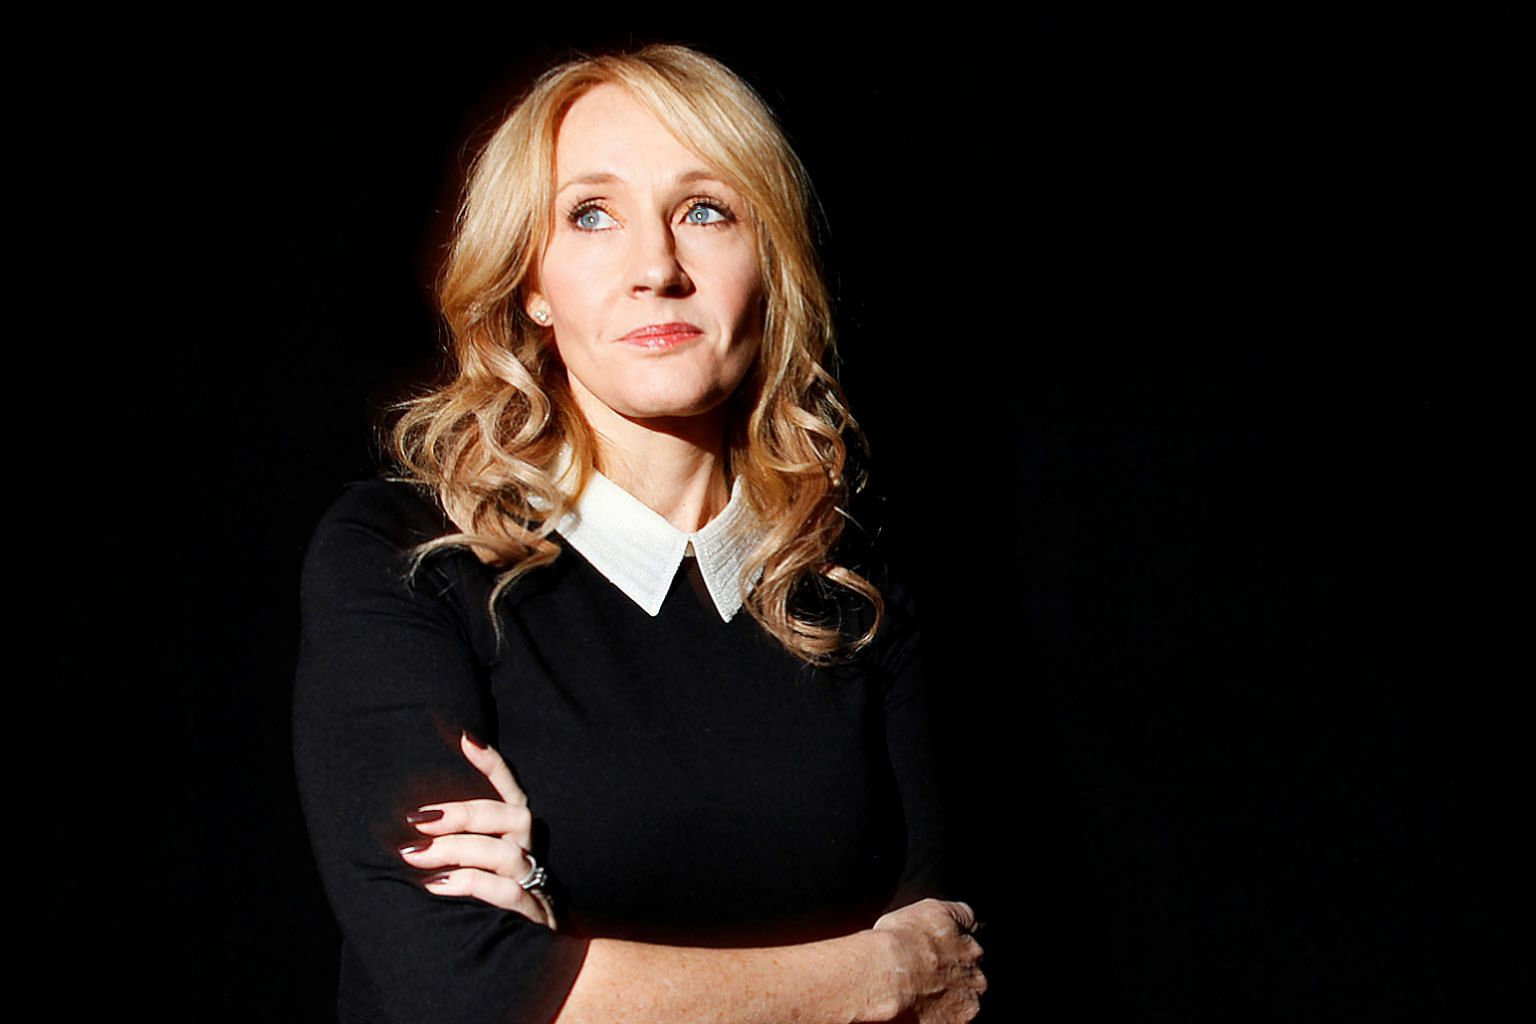 British author J.K. Rowling (above, in a 2012 photograph) will publish further chapters of The Ickabog every weekday until July 10.